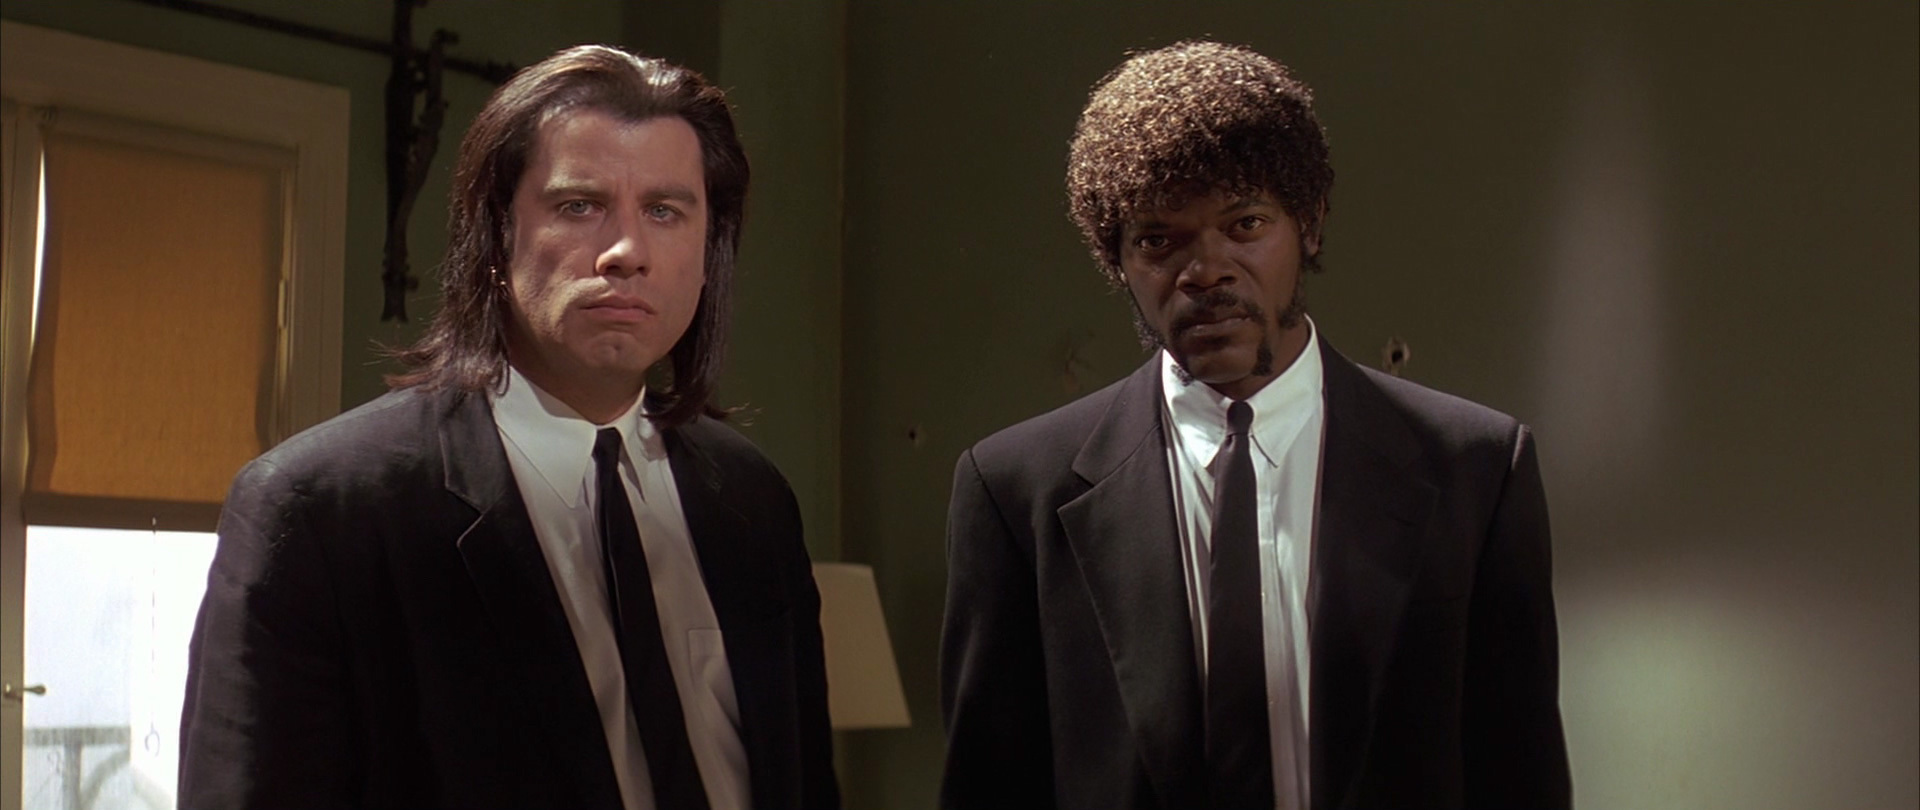 Pulp-Fiction-pulp-fiction-13189220-1920-810